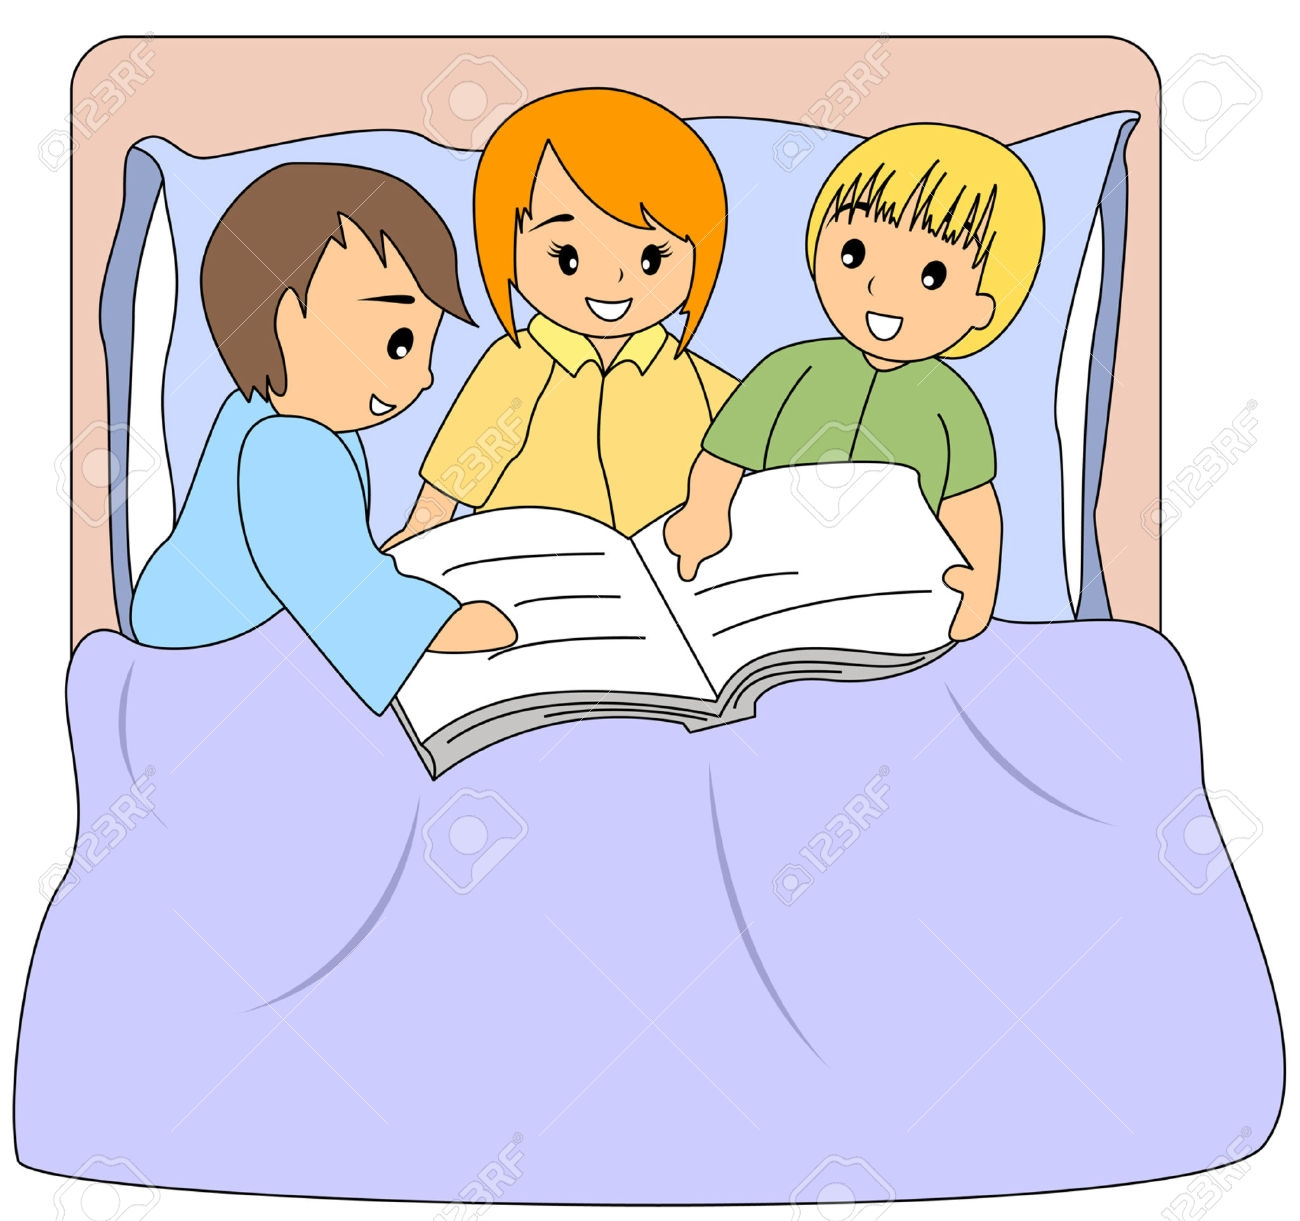 Reading a book in bed clipart image black and white Reading a book in bed clipart - ClipartFest image black and white